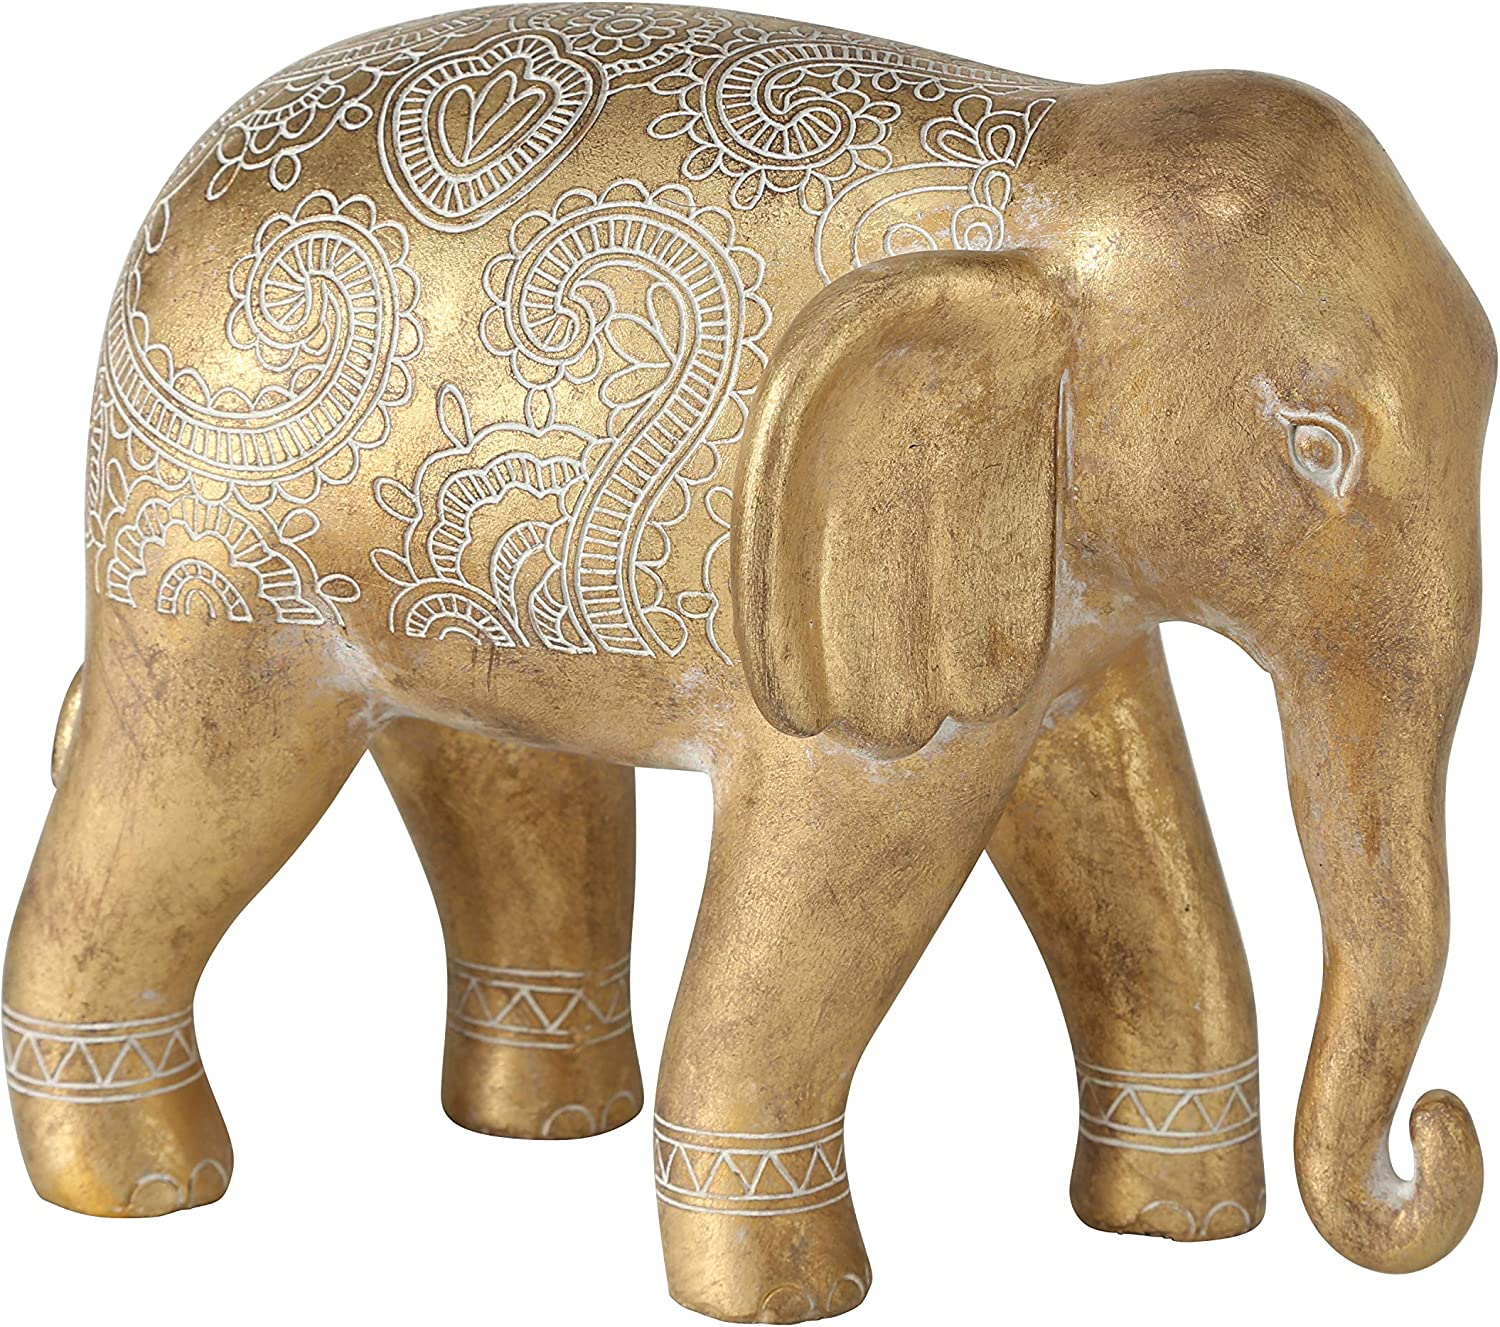 Max 41% OFF Festival NEW before selling ☆ Elephant of Luck and Outdoor Garden Happiness Indoor S